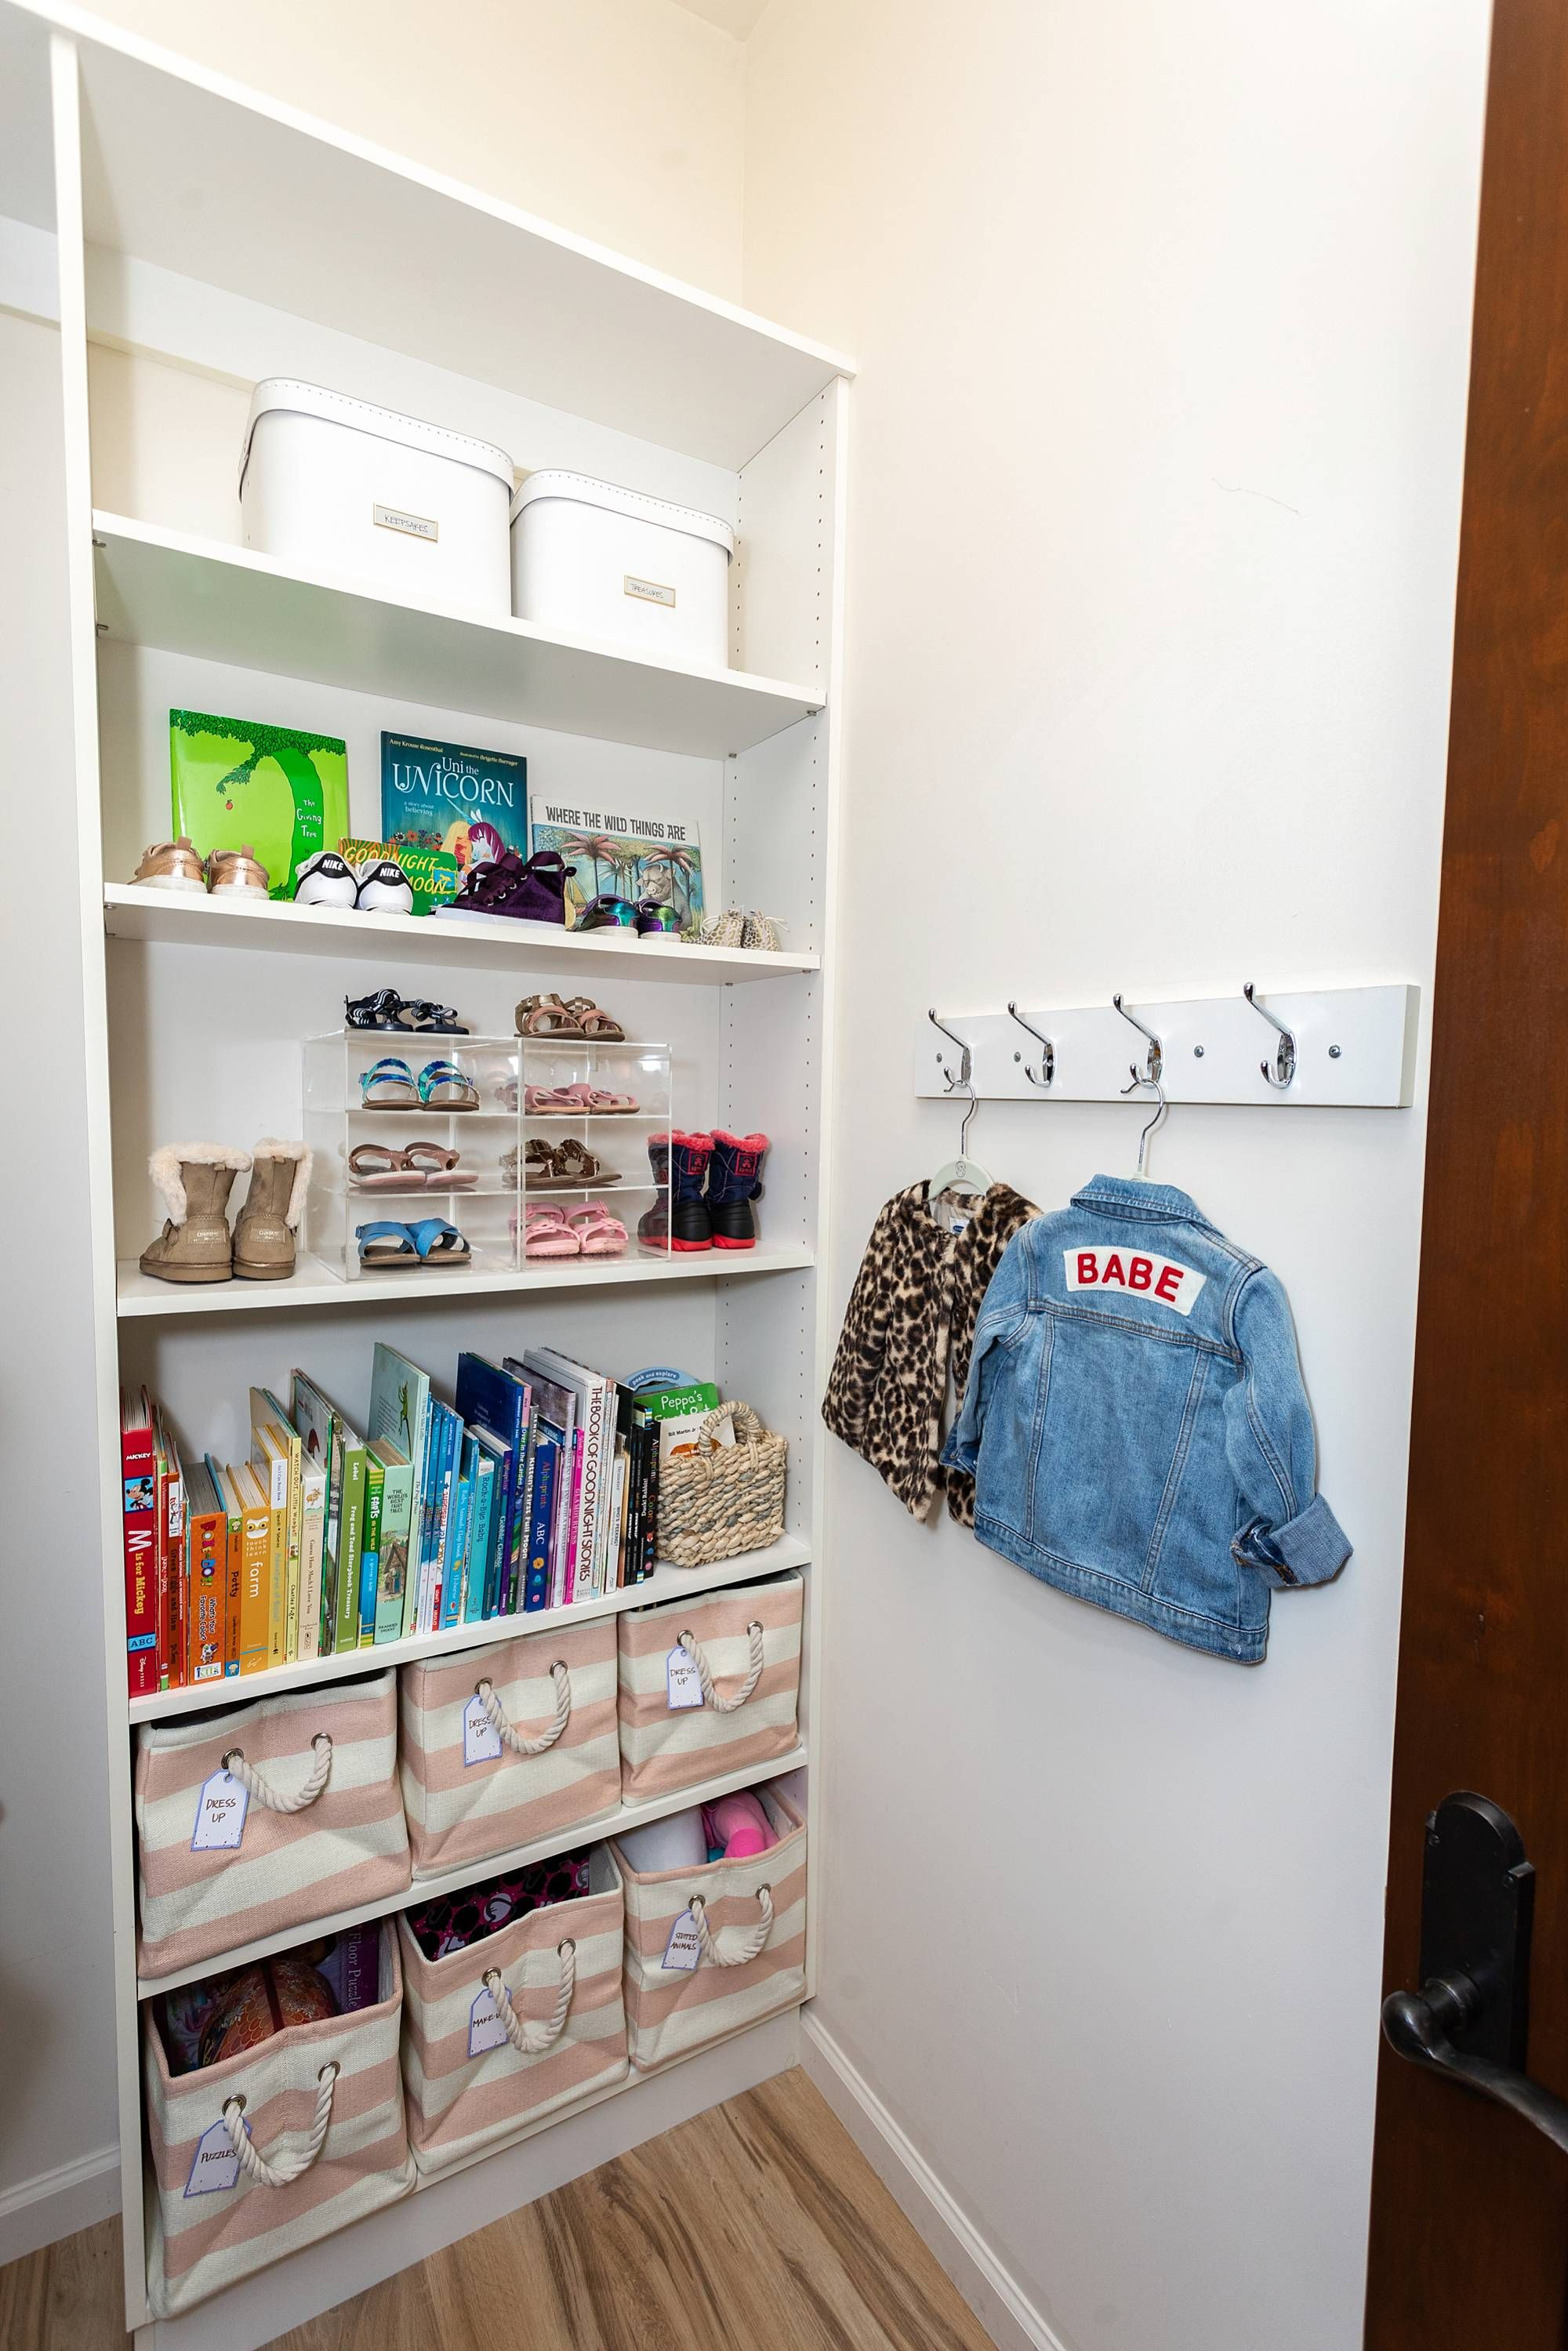 Home organization tips from house of turk home